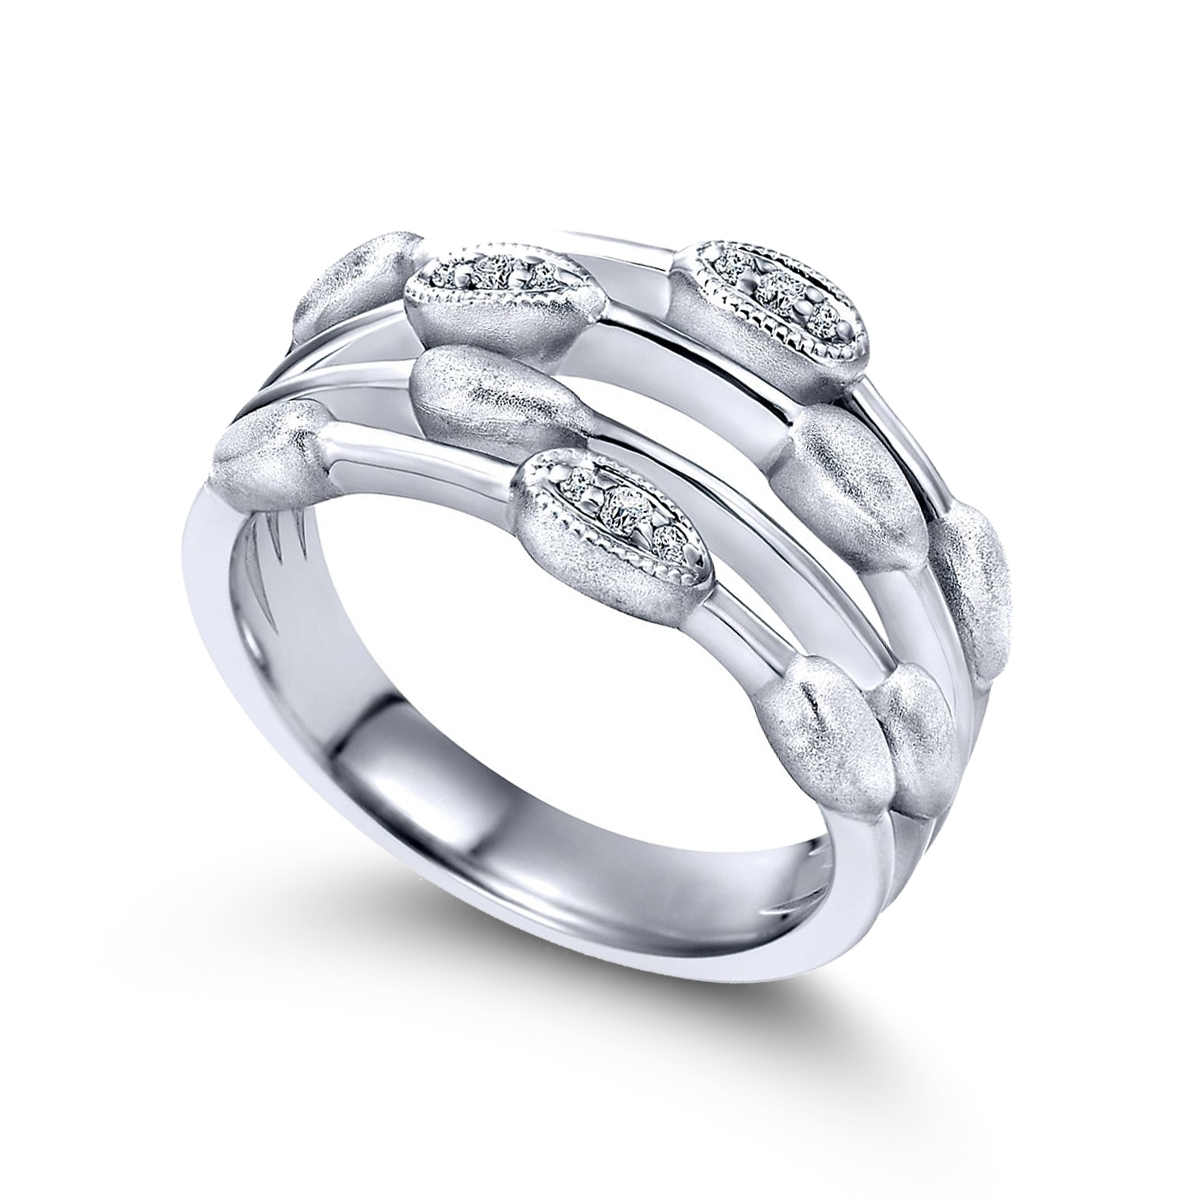 Sterling Four Row Diamond Accent Band | Friedman's Jewelers With Best And Newest Diamond Four Row Anniversary Bands In Sterling Silver (View 3 of 15)